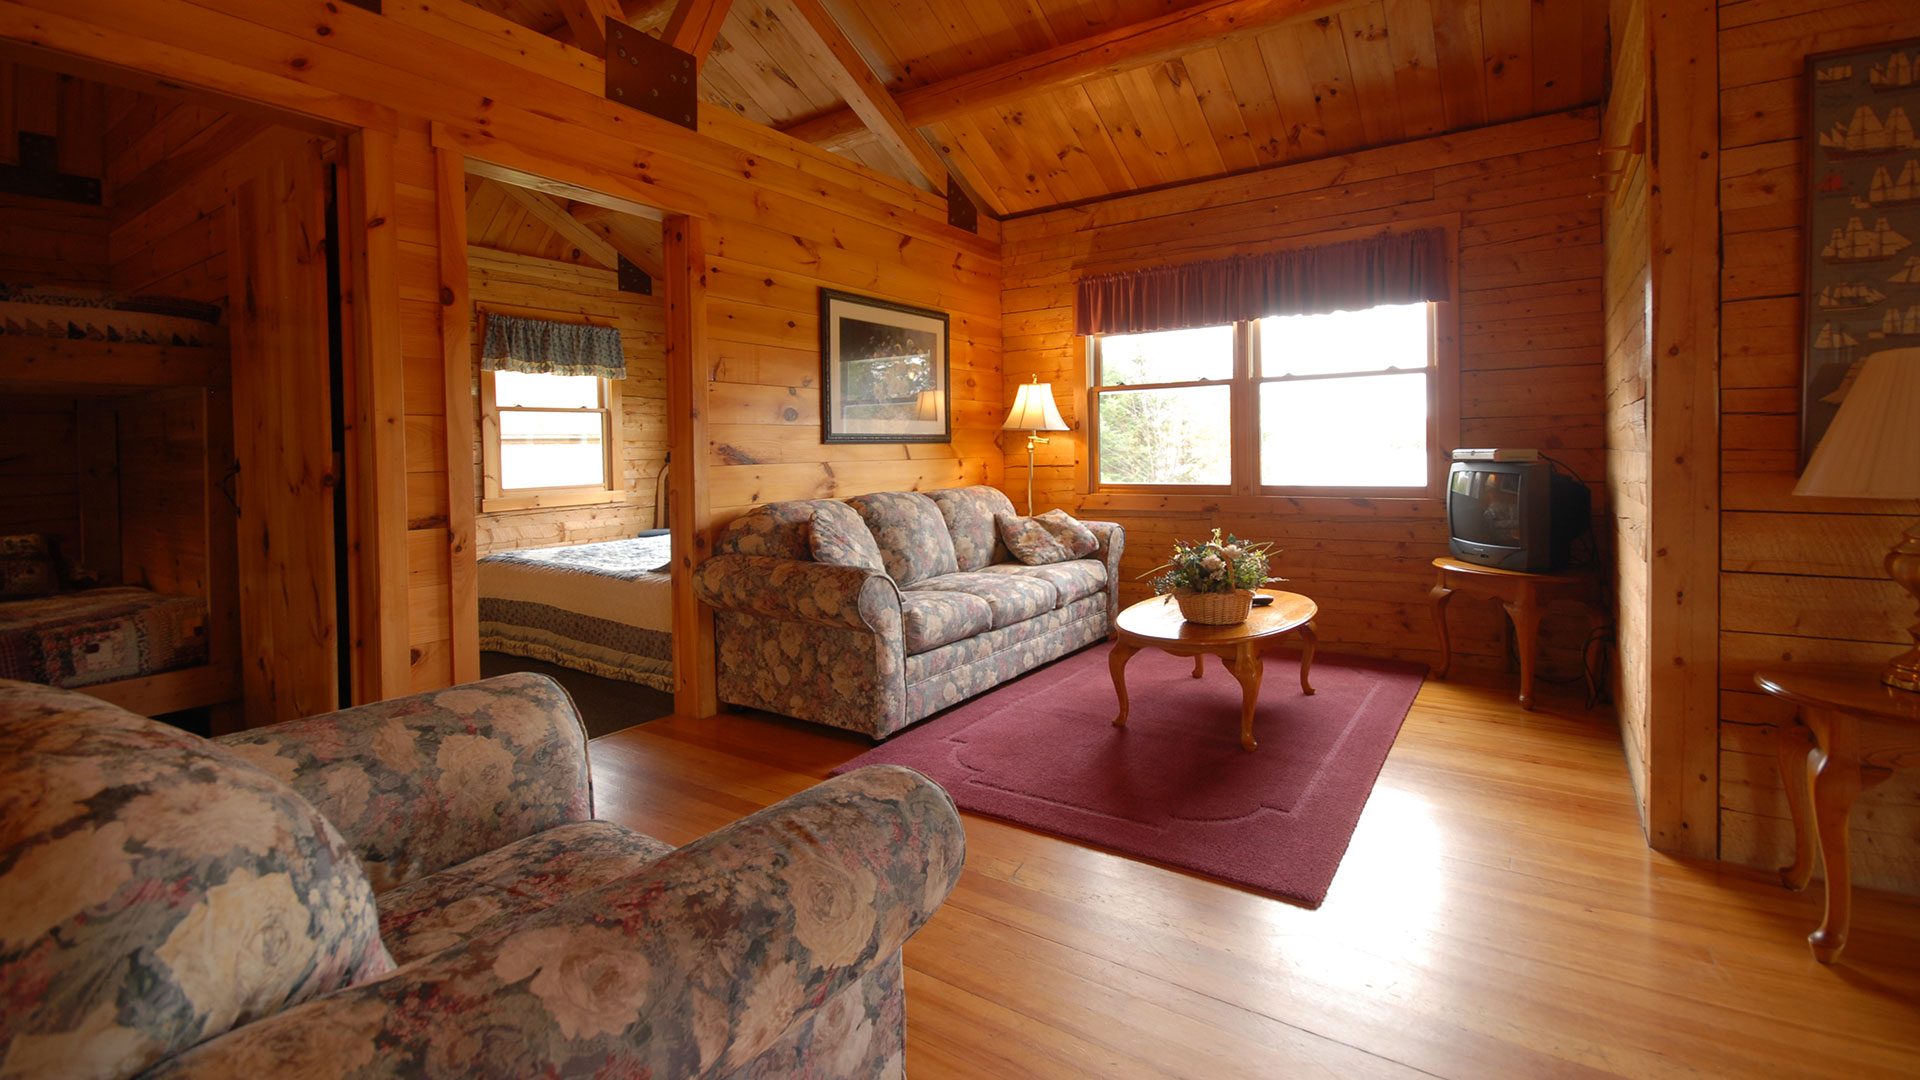 living room rentals cabin nh archives back rest lake retreat lopstick mallard cabins s